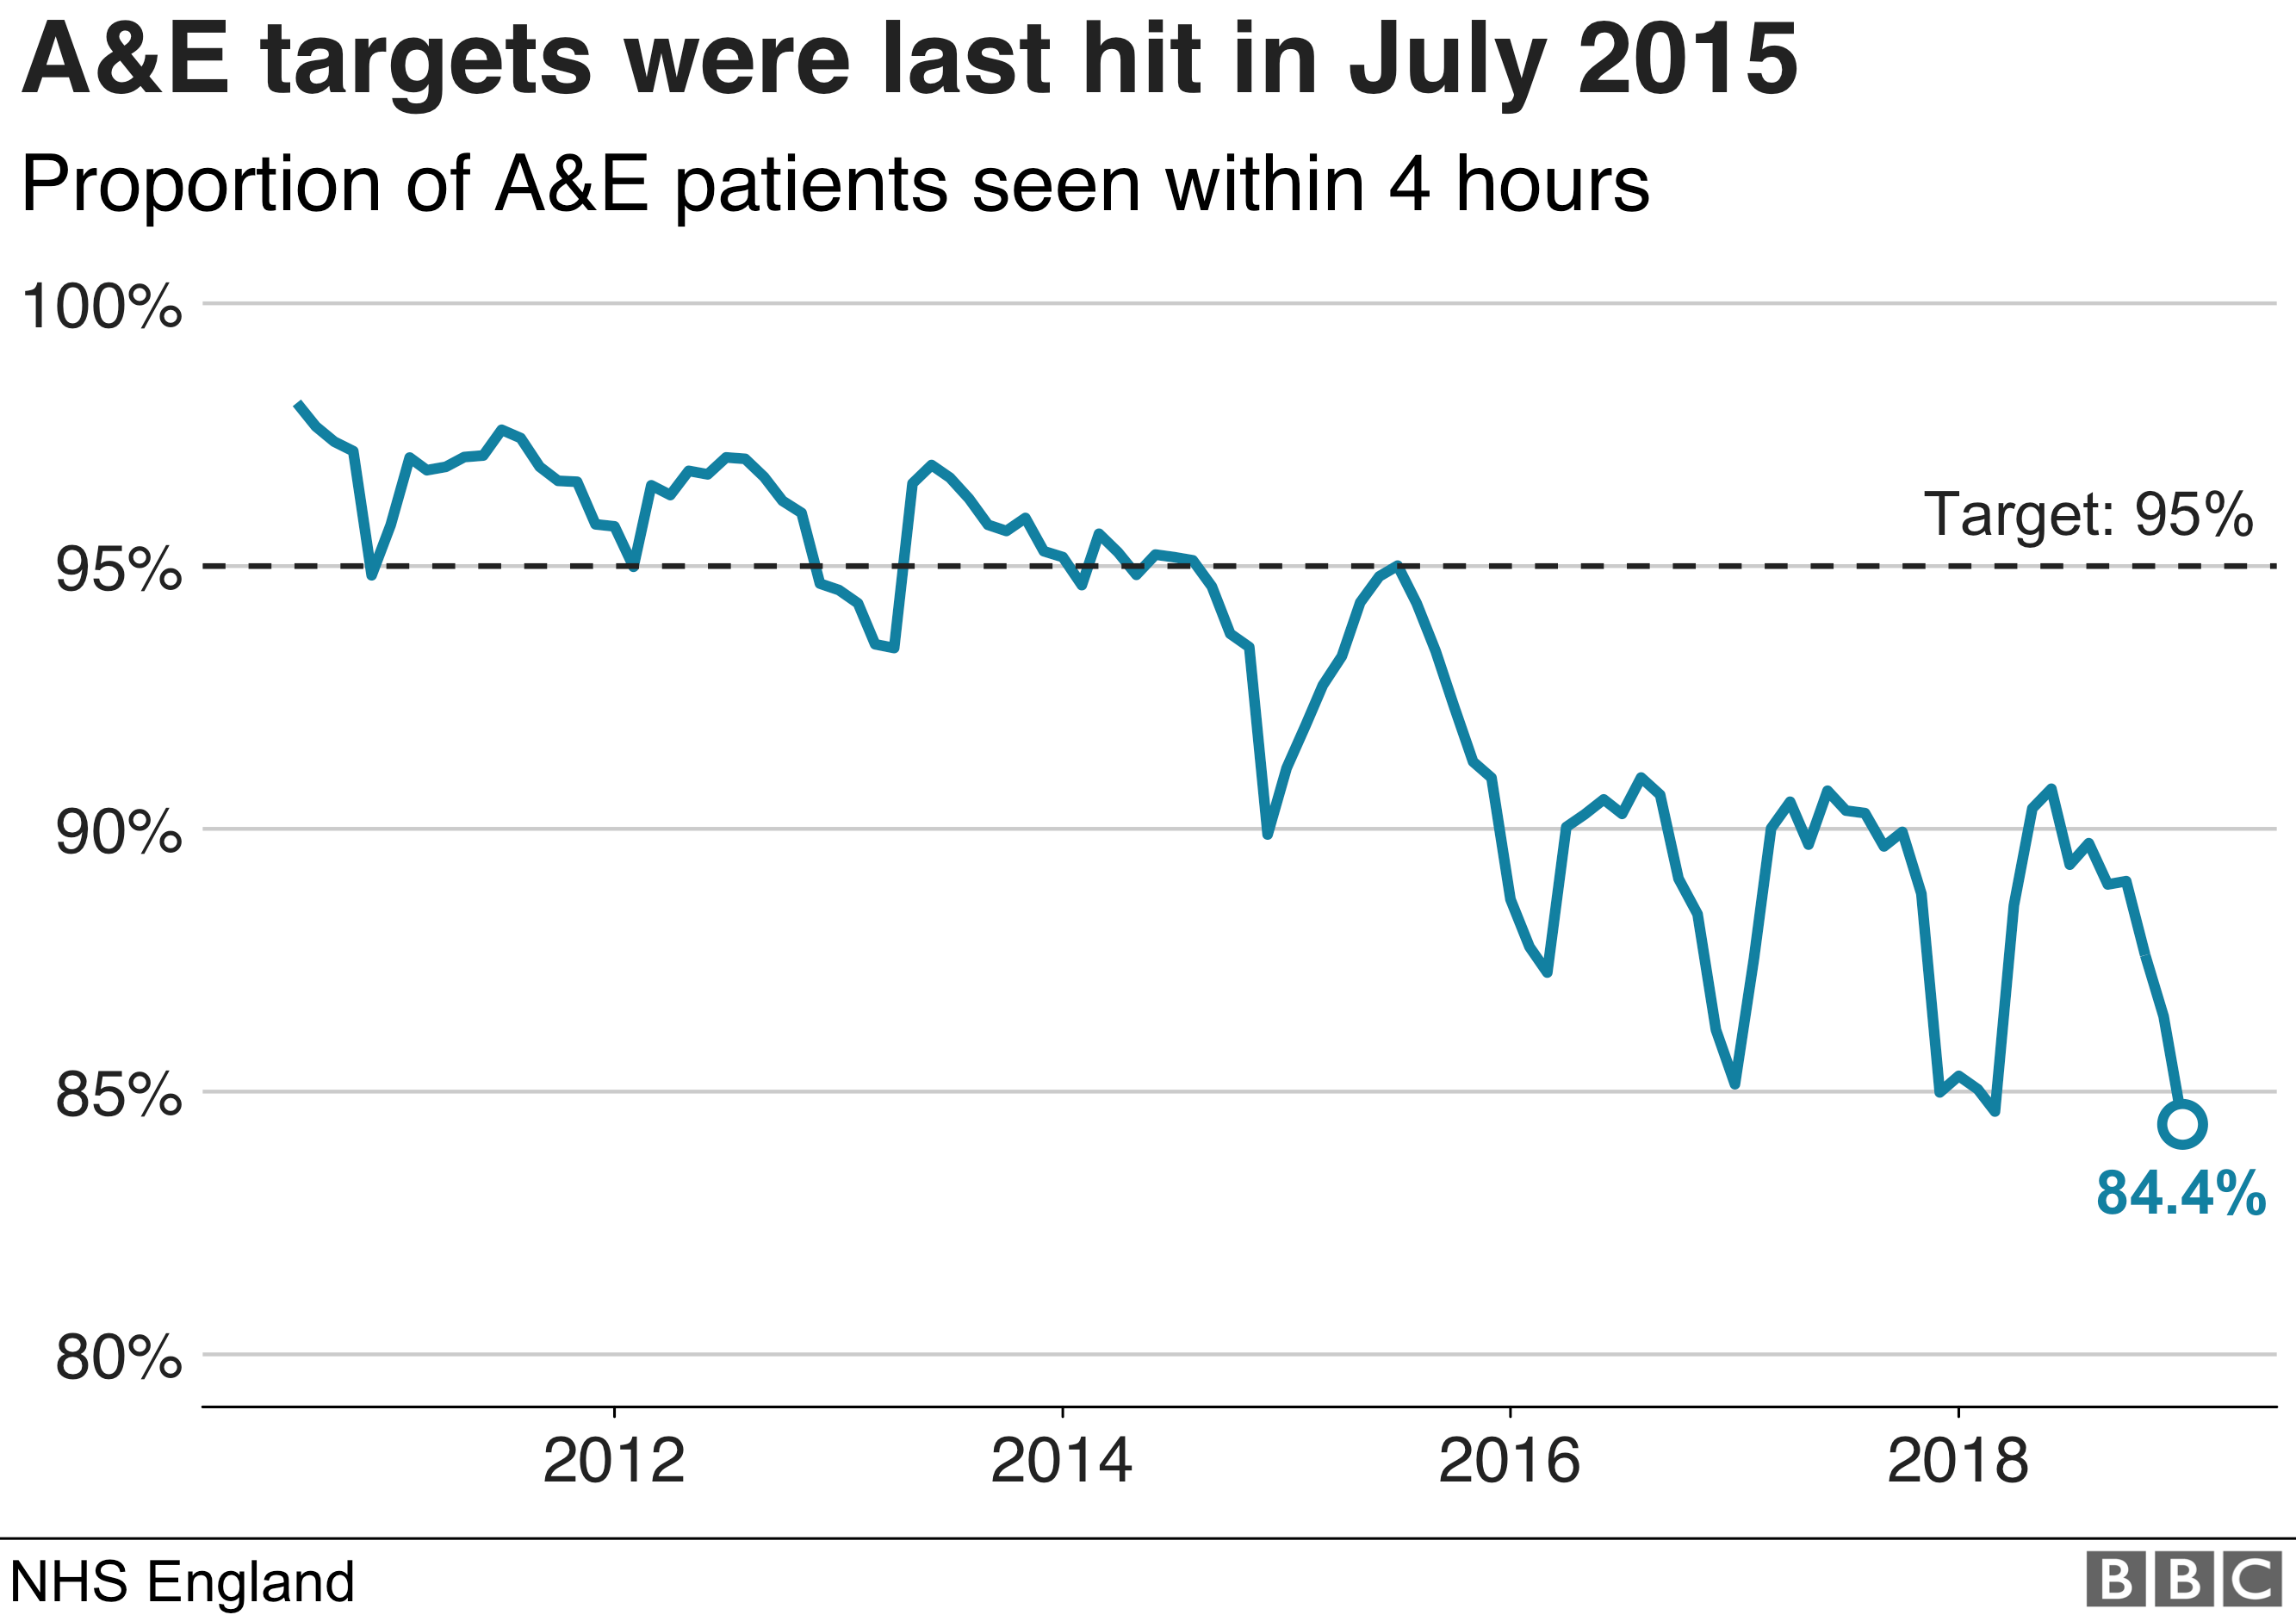 A&E Targets in England